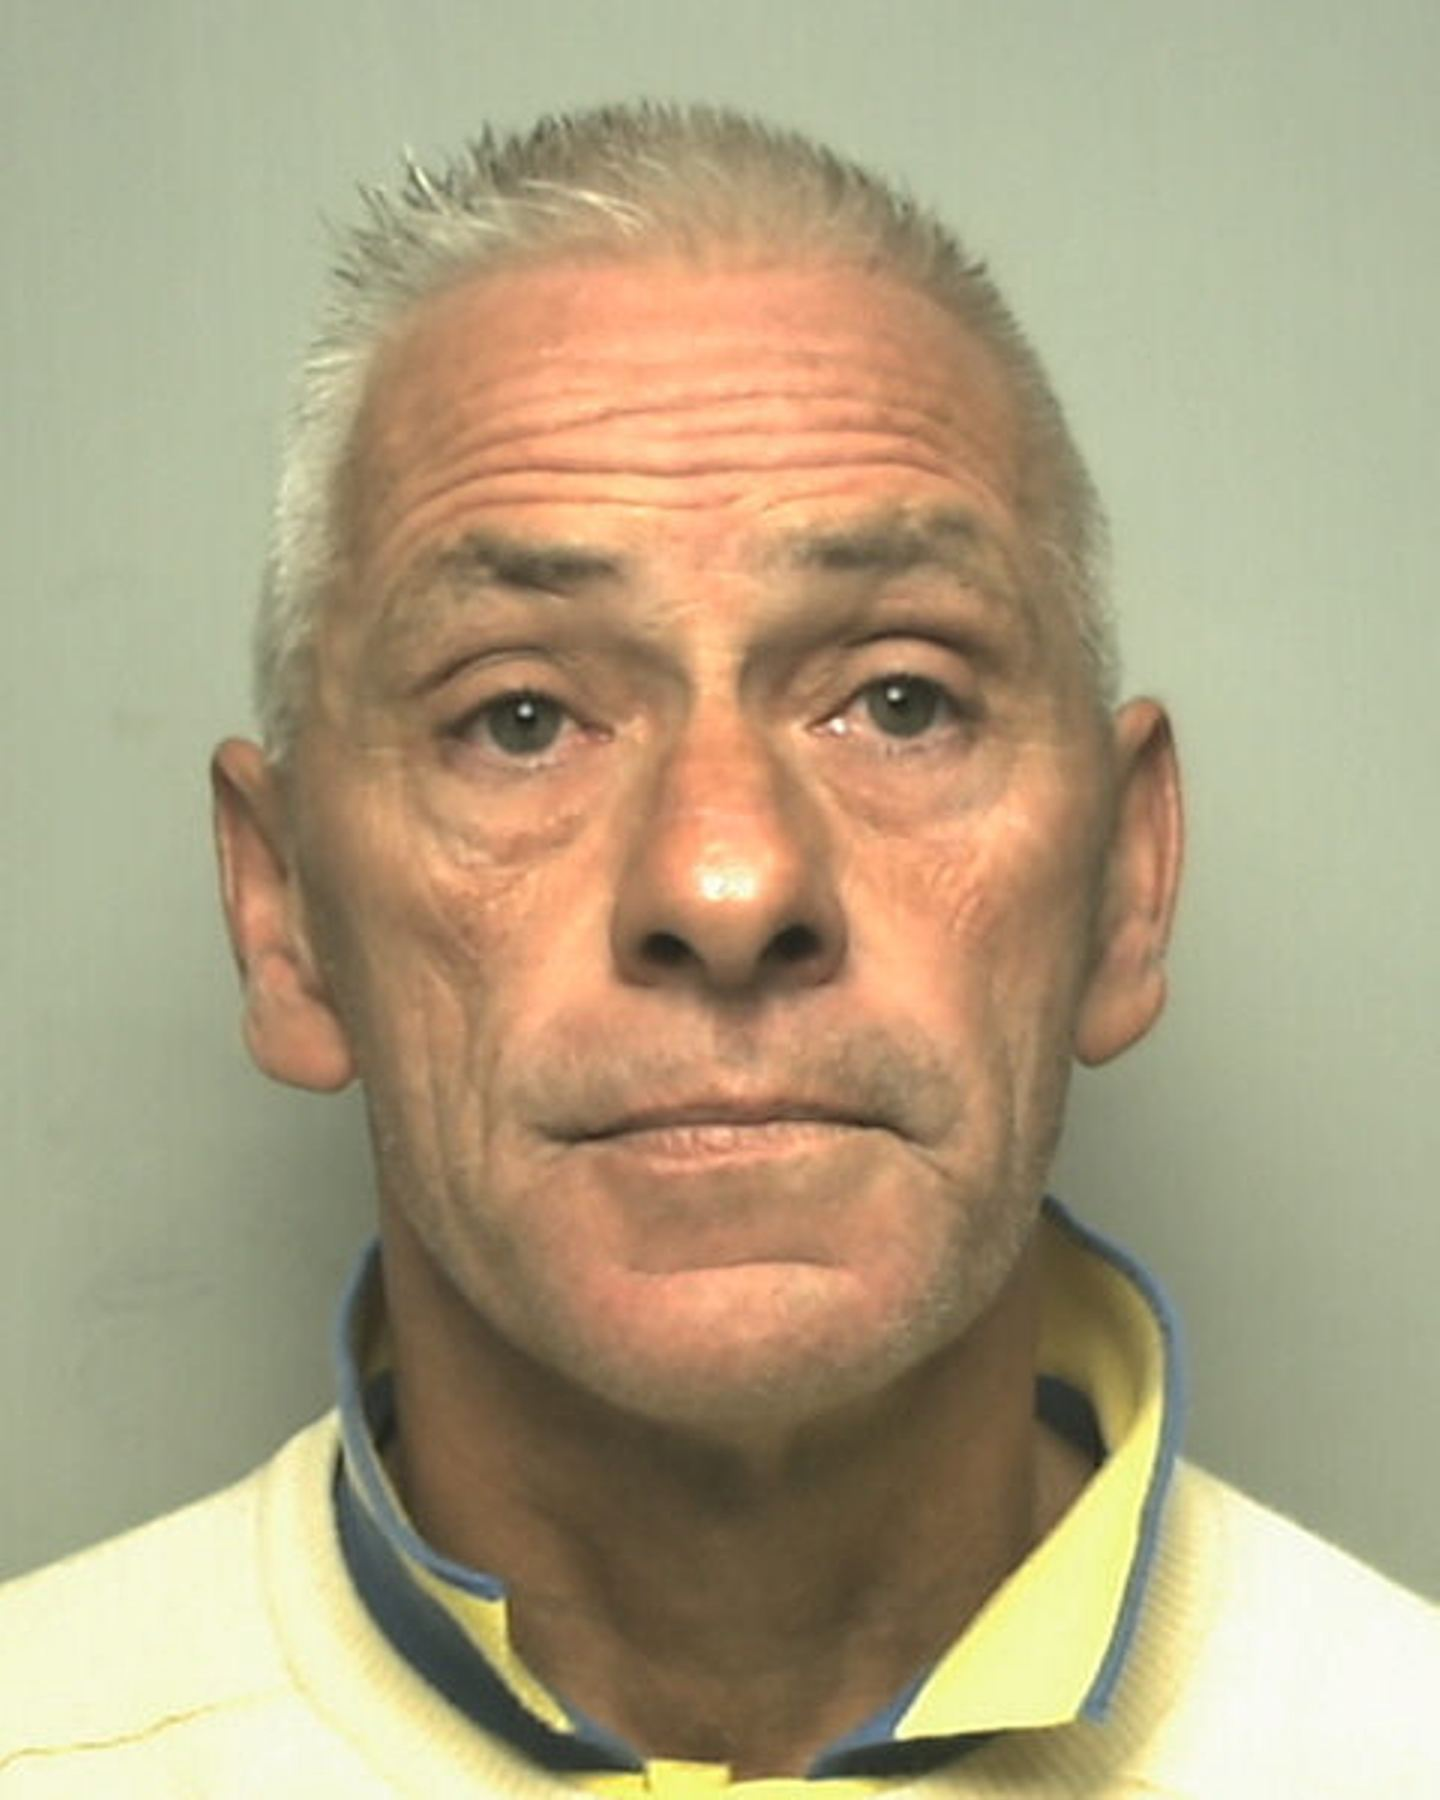 Rapist jailed for series of historic sex offences